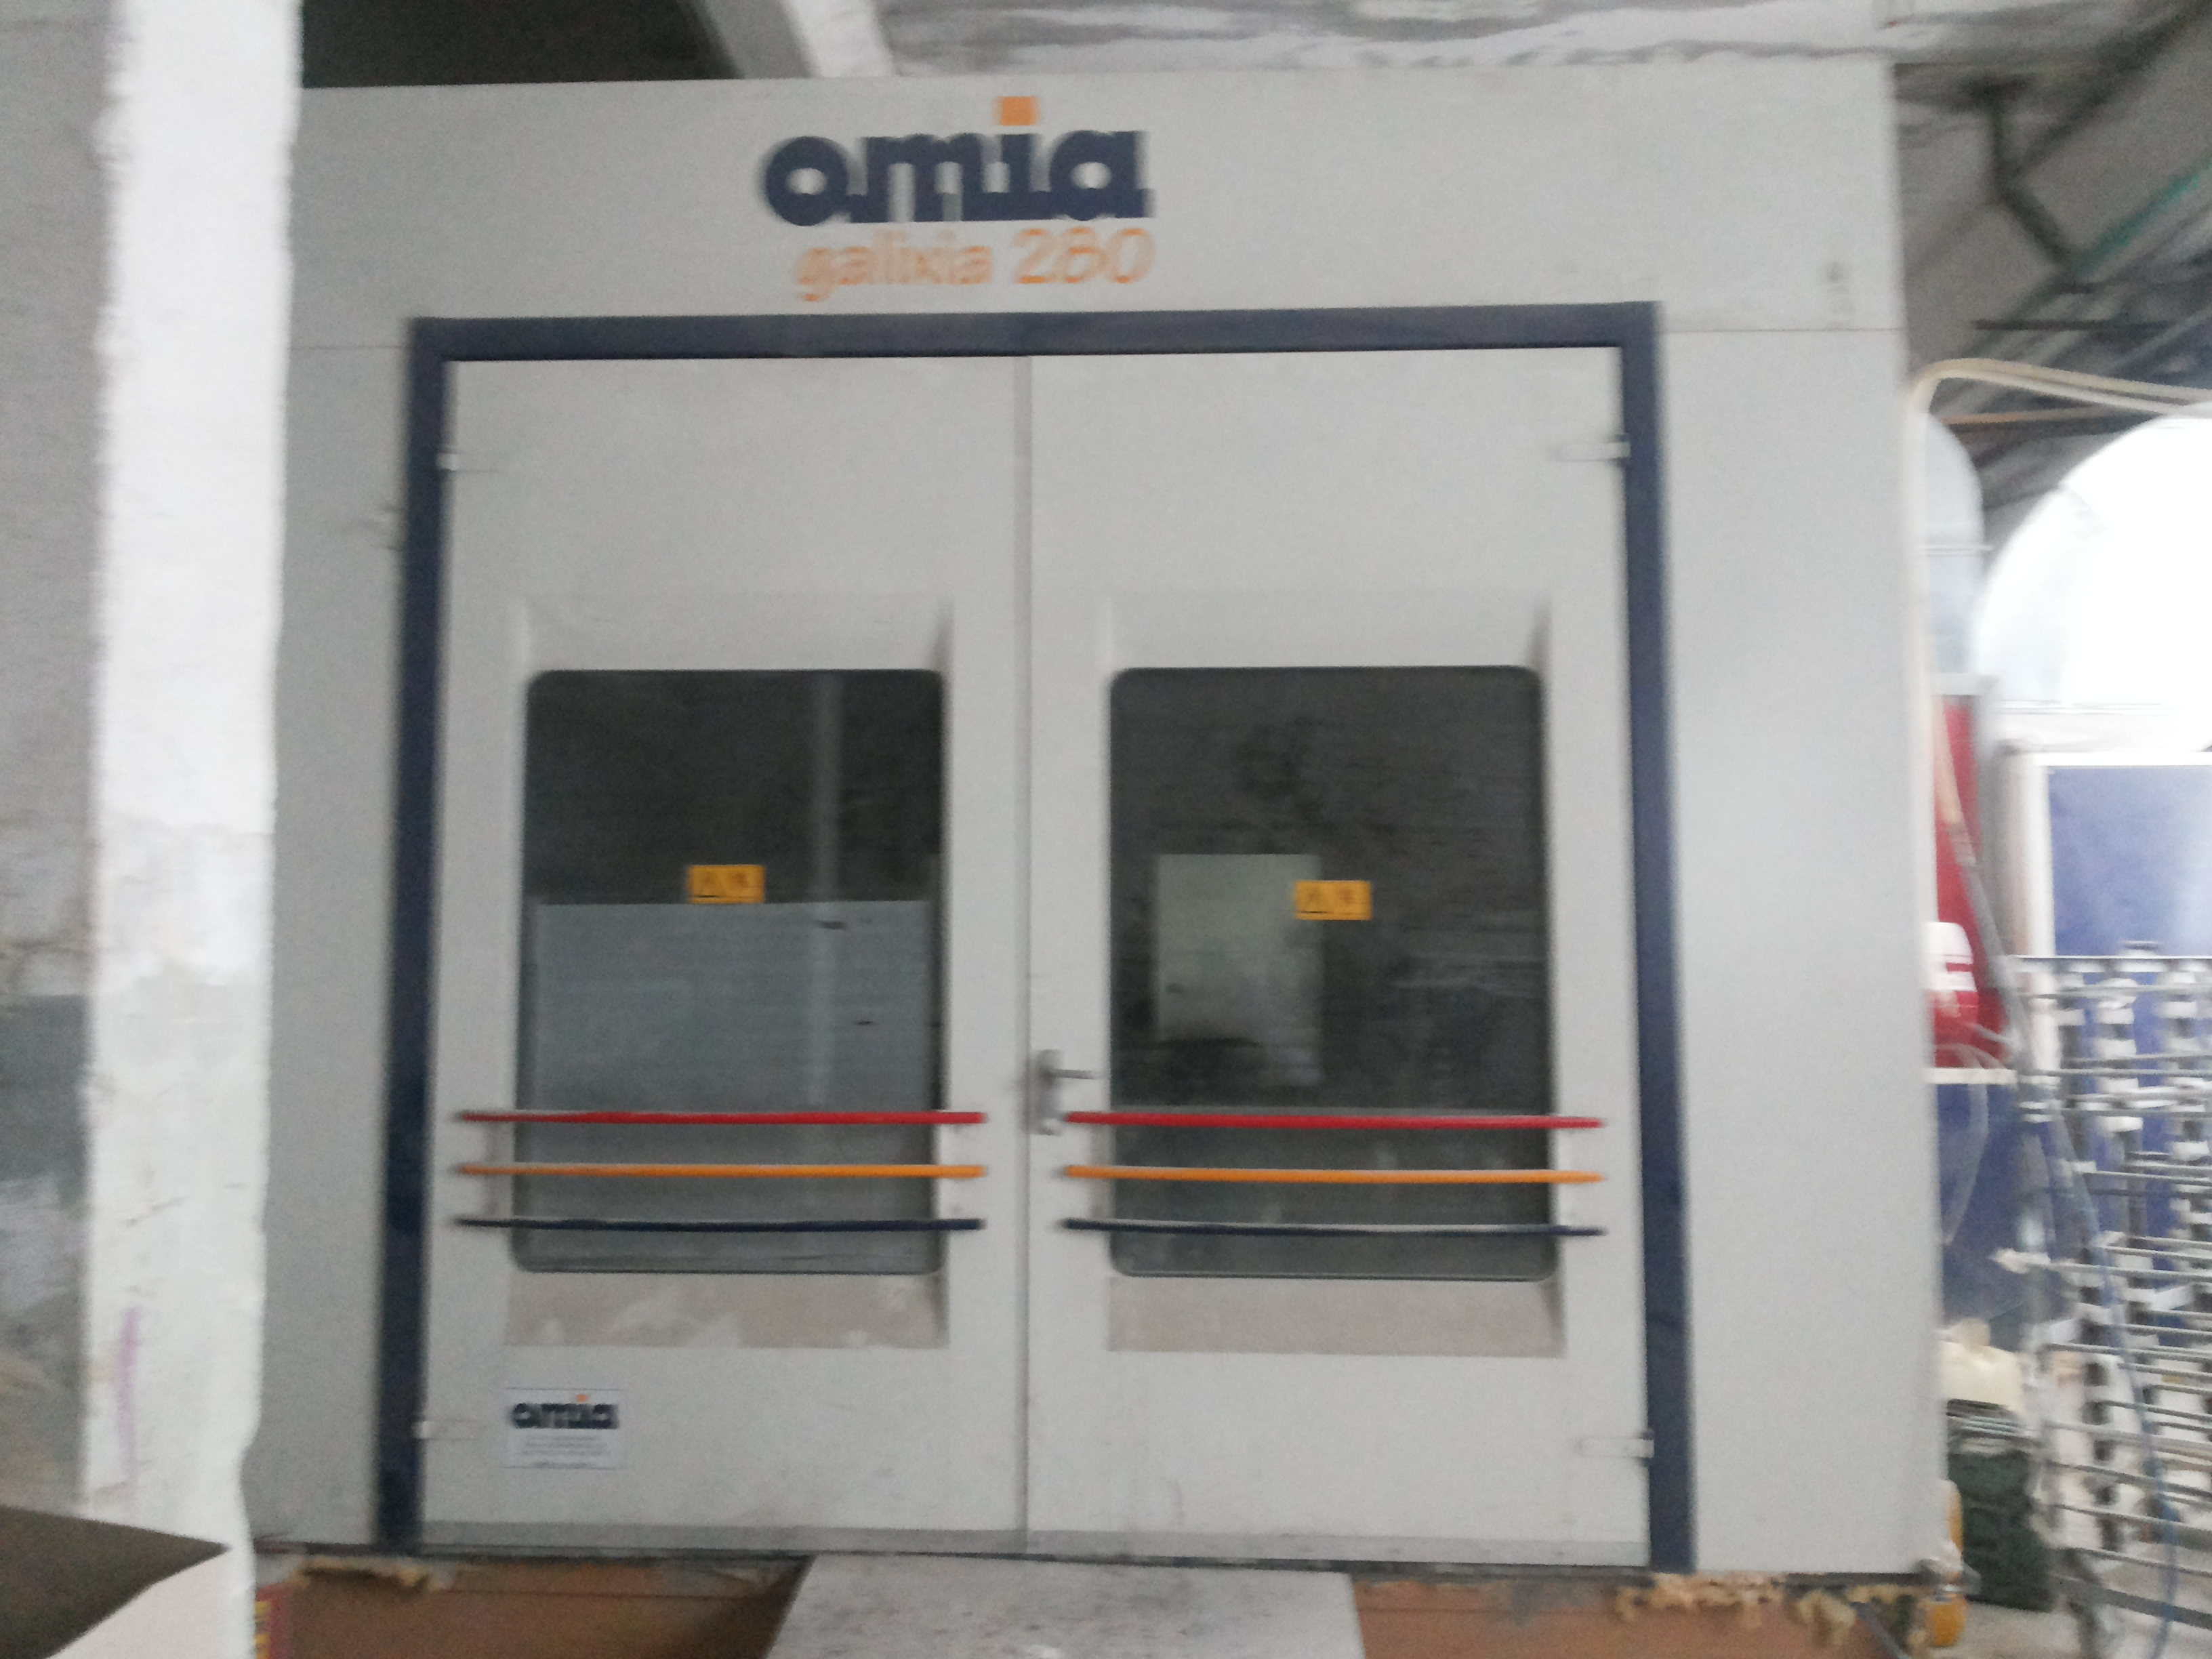 cabine de peinture omia galixia 280p machines d 39 occasion exapro. Black Bedroom Furniture Sets. Home Design Ideas